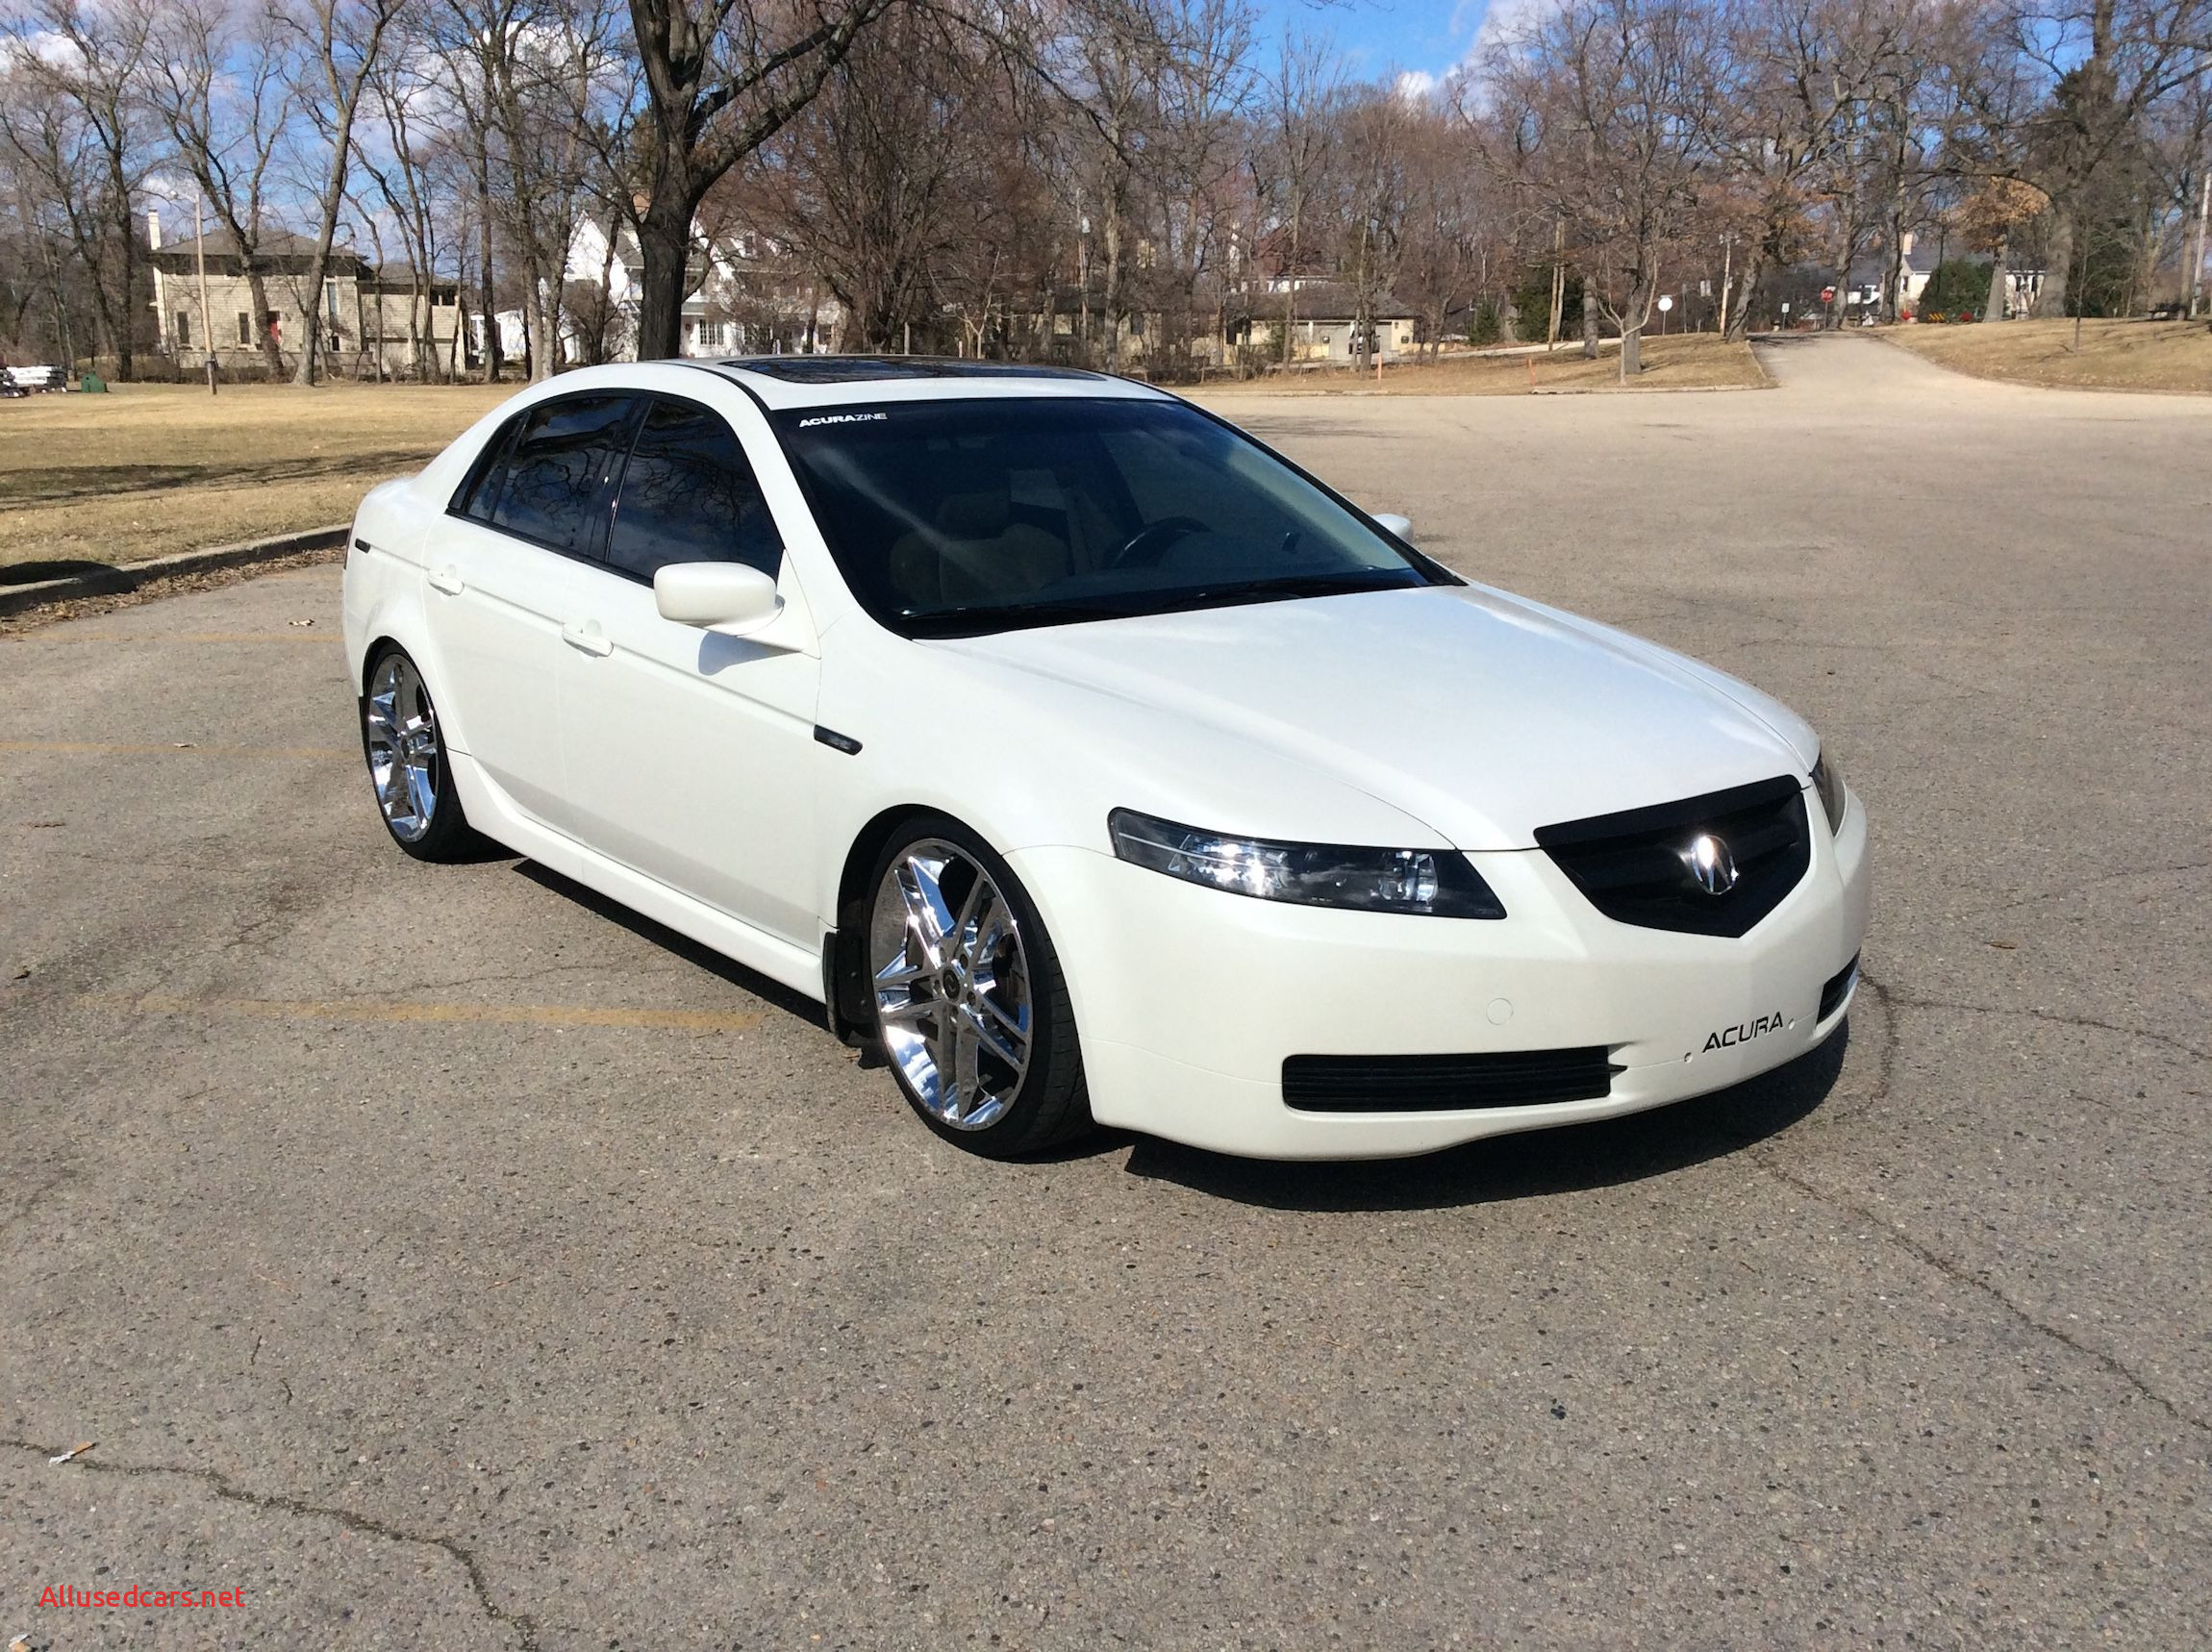 Acura Tl for Sale Inspirational theodorable andrew theodorablea On Pinterest